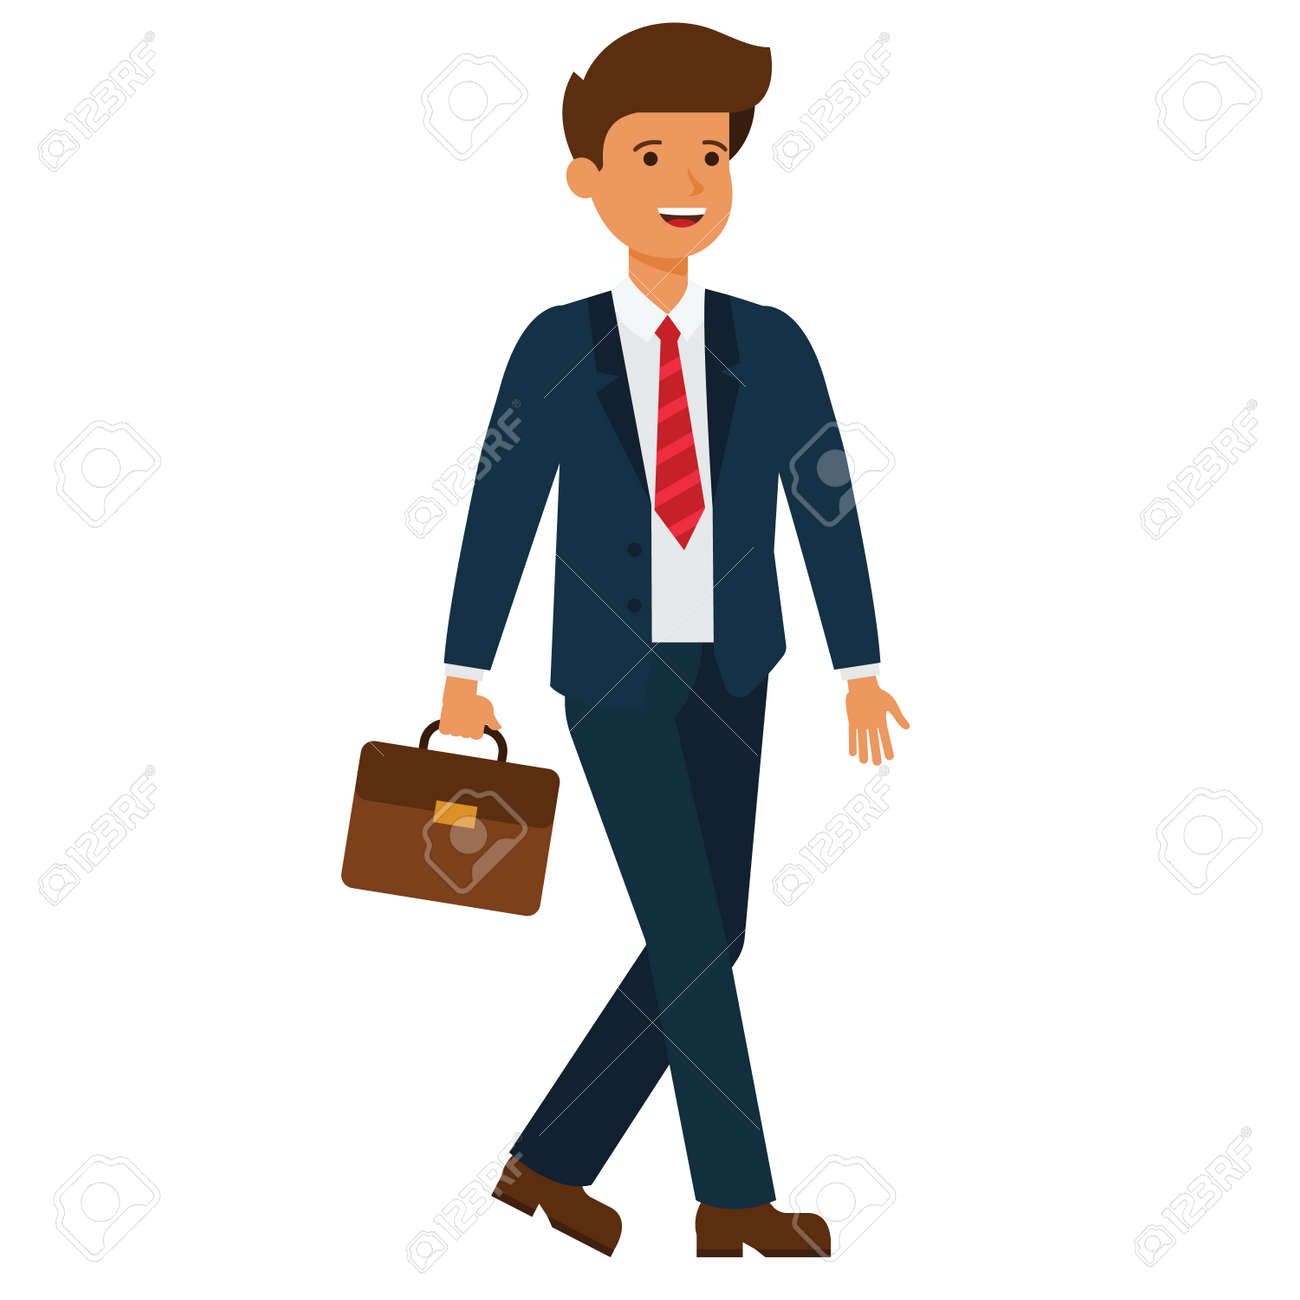 Businessman going to work cartoon flat illustration concept on isolated vector white background - 88346723